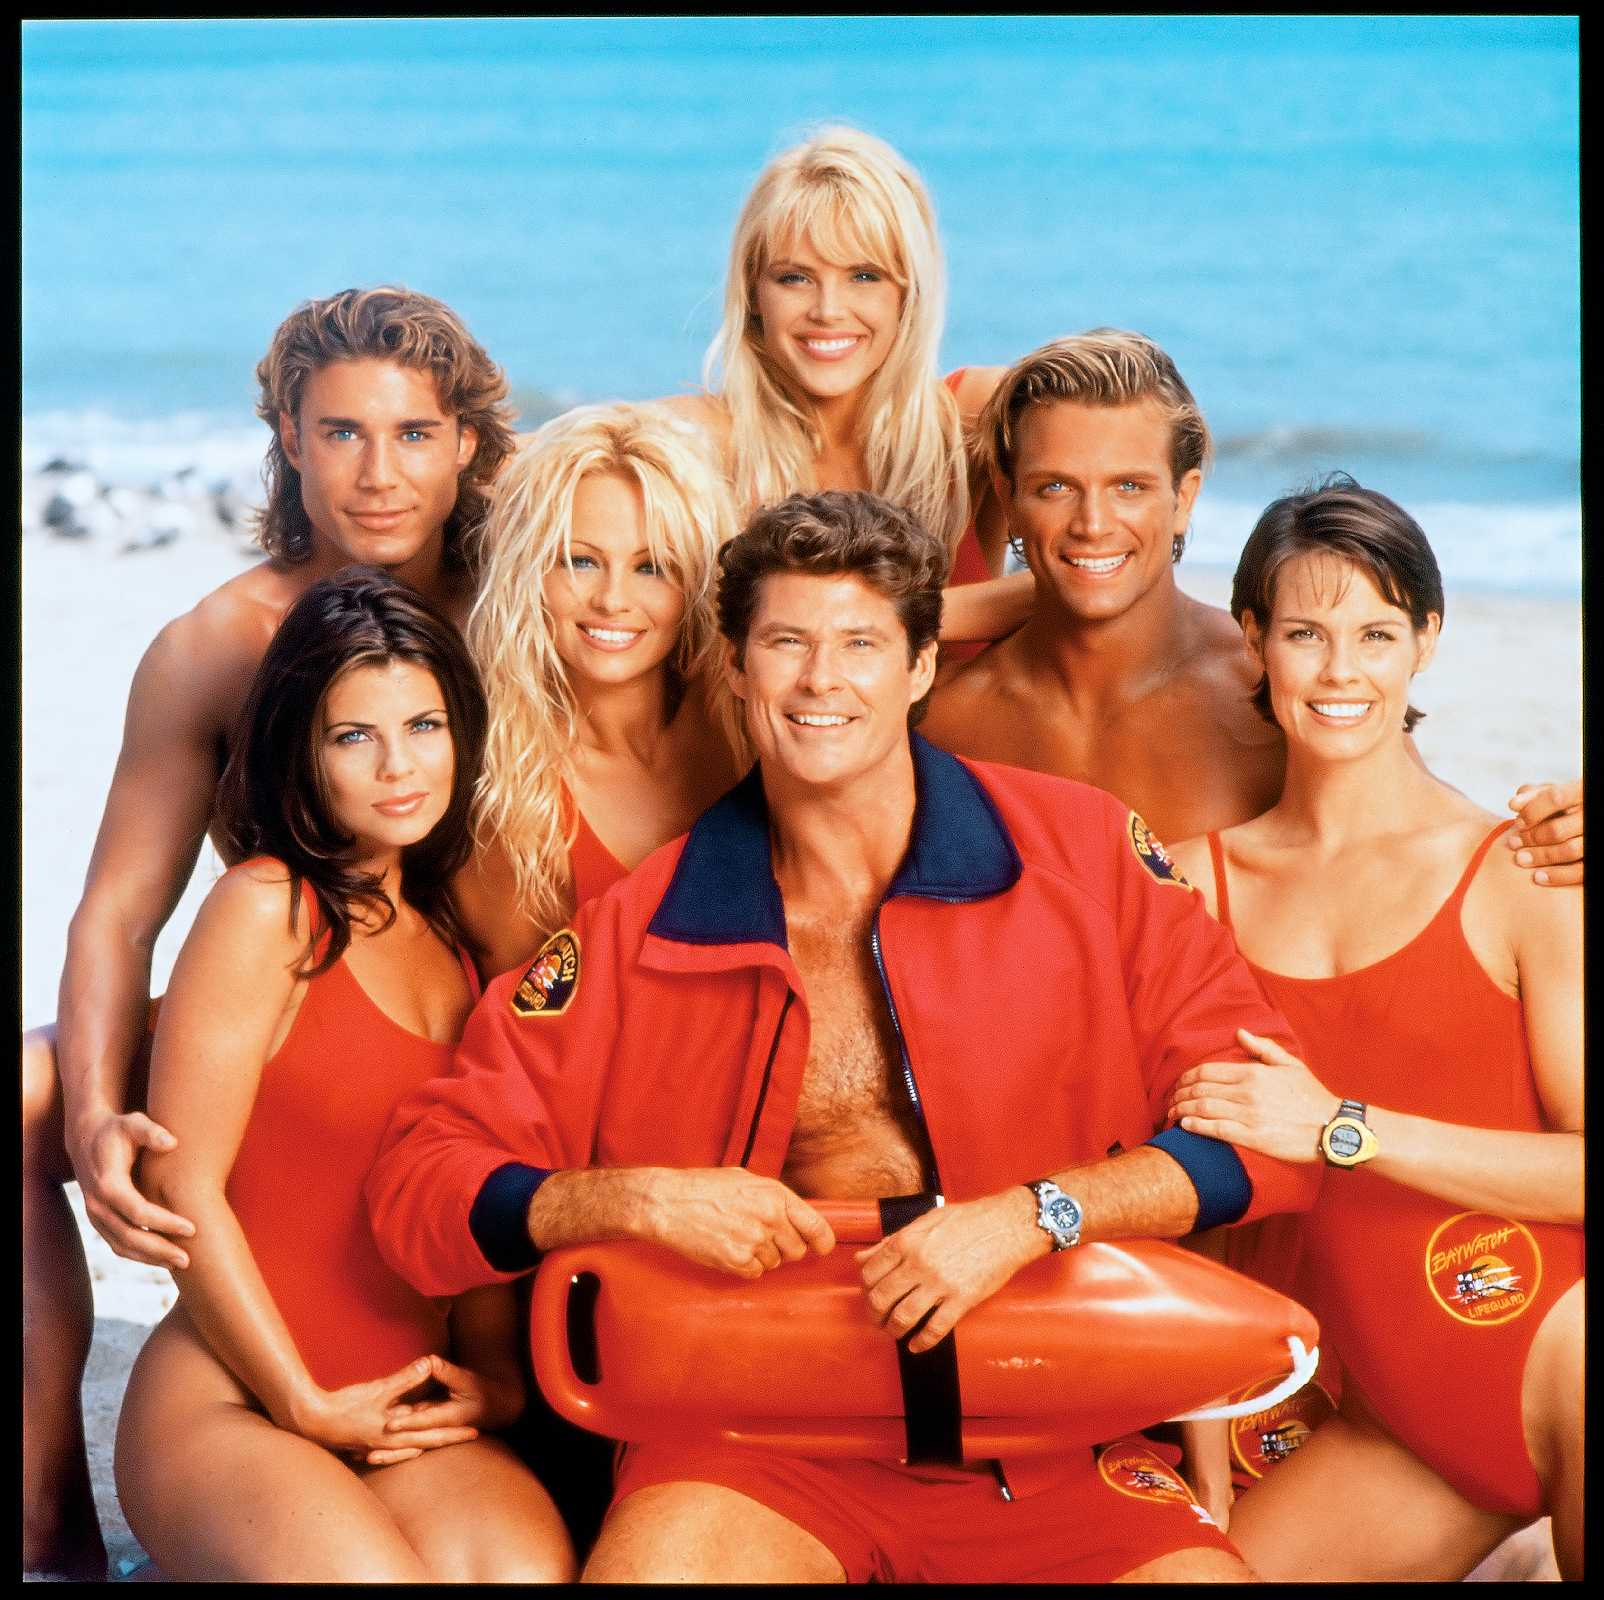 baywatch_005